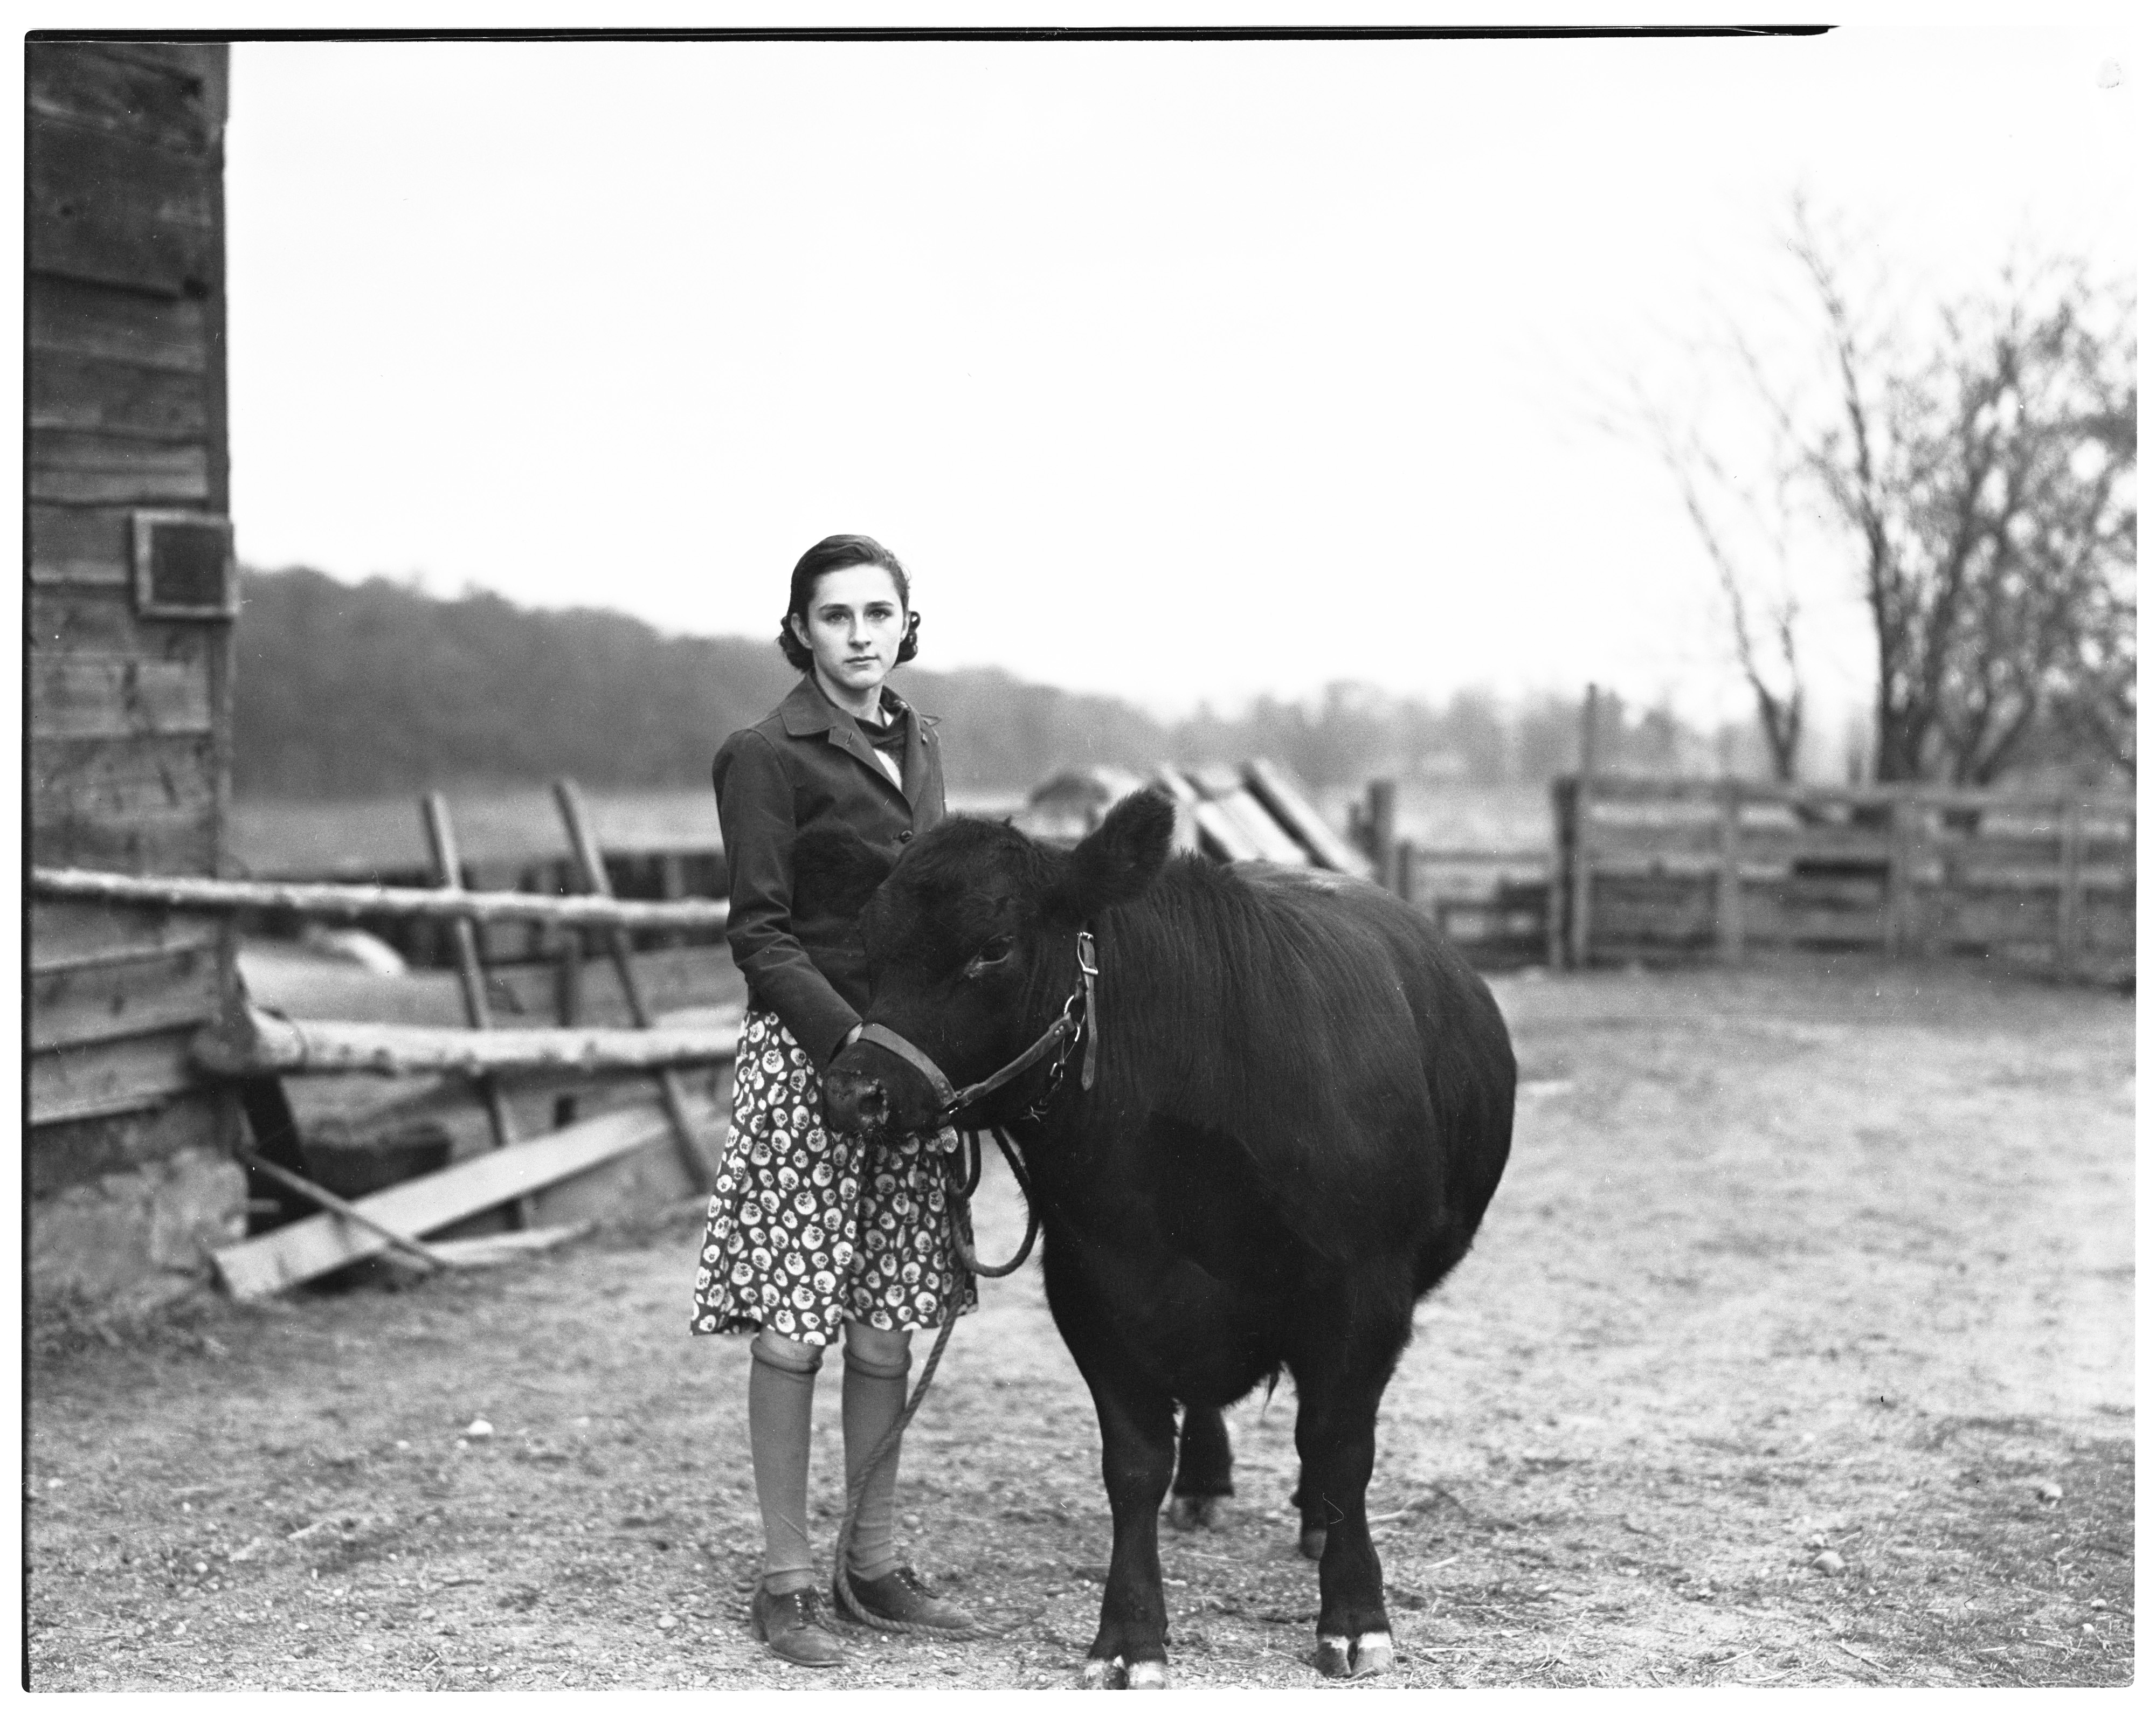 Mary Lesser & Aberdeen Angus Steer, November 1936 image